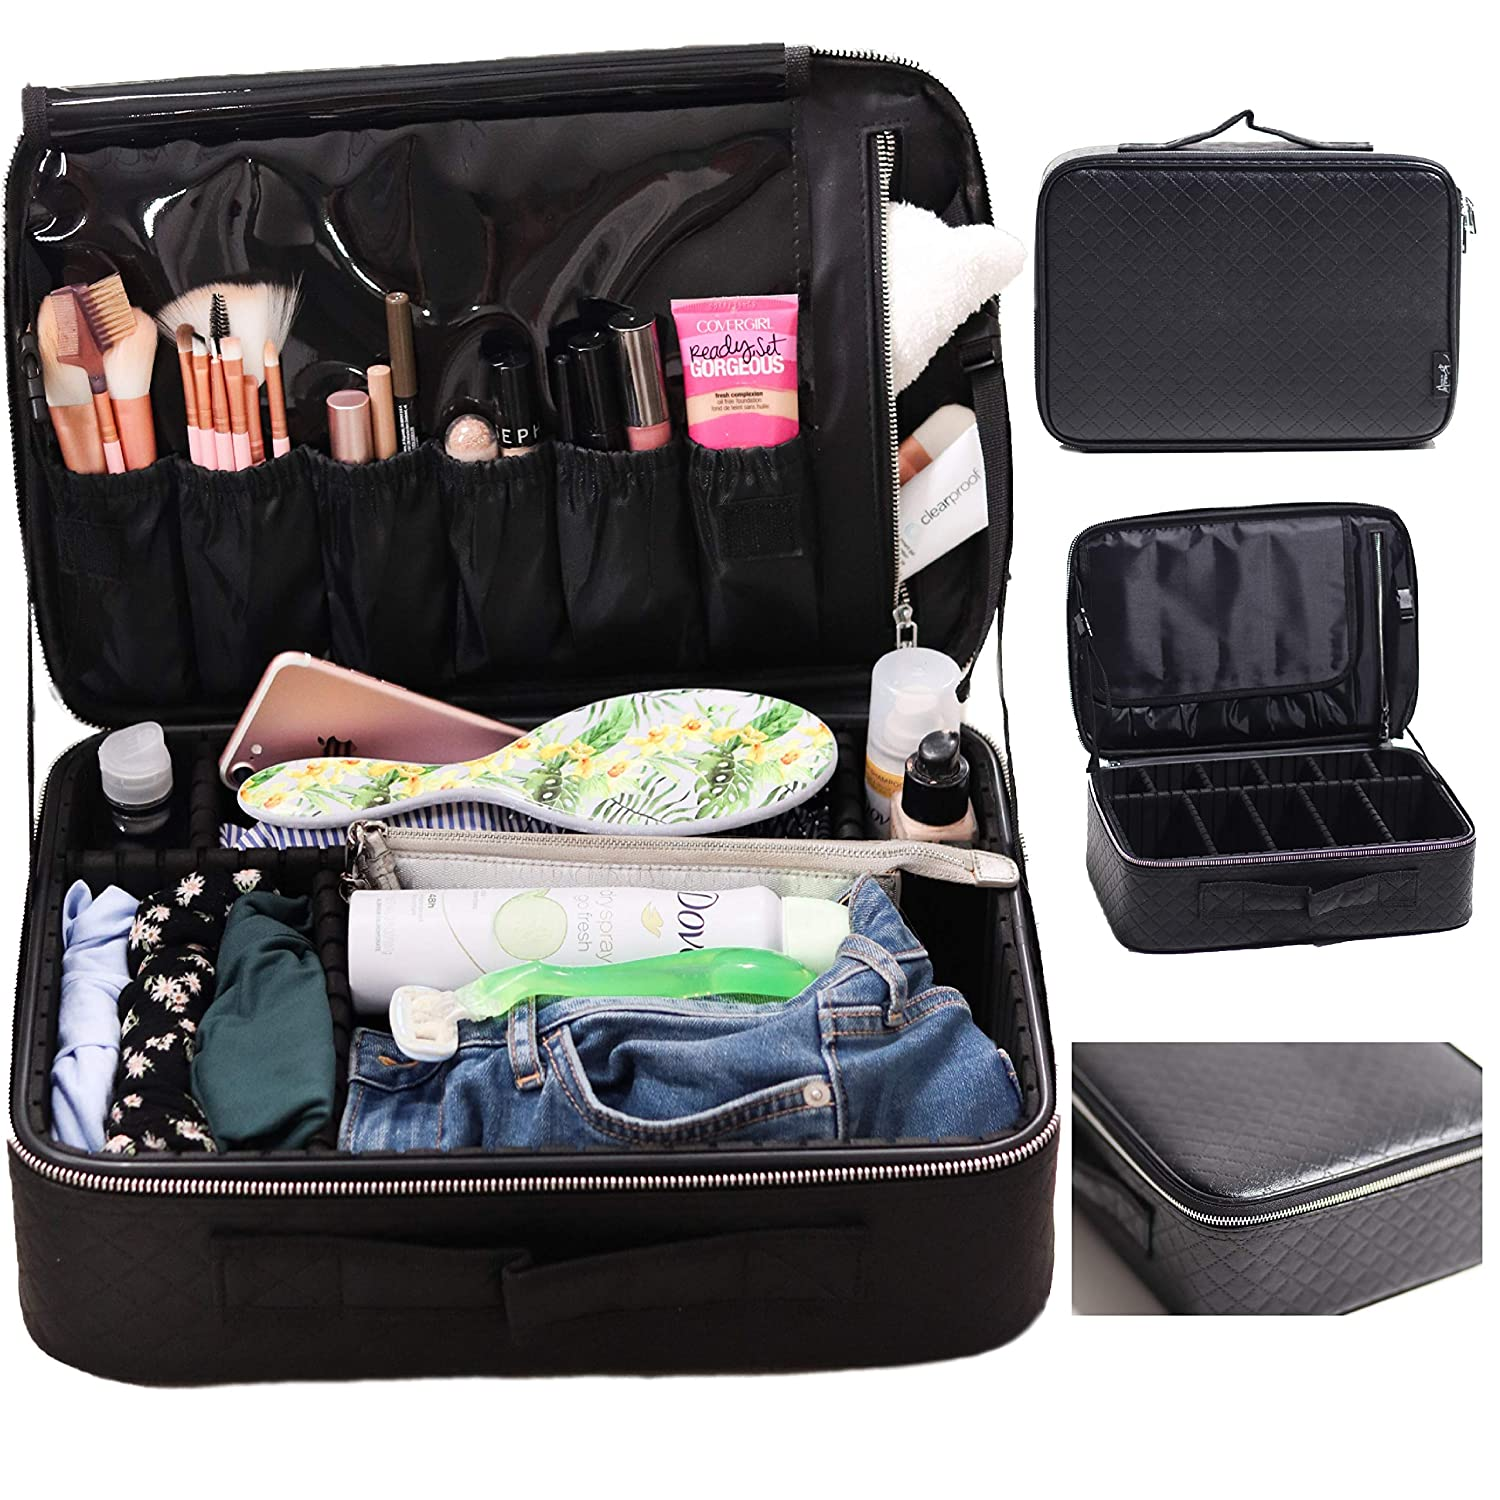 Travel Makeup Train Case by Beauty by MDH – Professional Artist Organizer Cosmetic bag with portable storage for Makeup brushes and jewelry – Women Large Black Waterproof toiletry- adjustable dividers